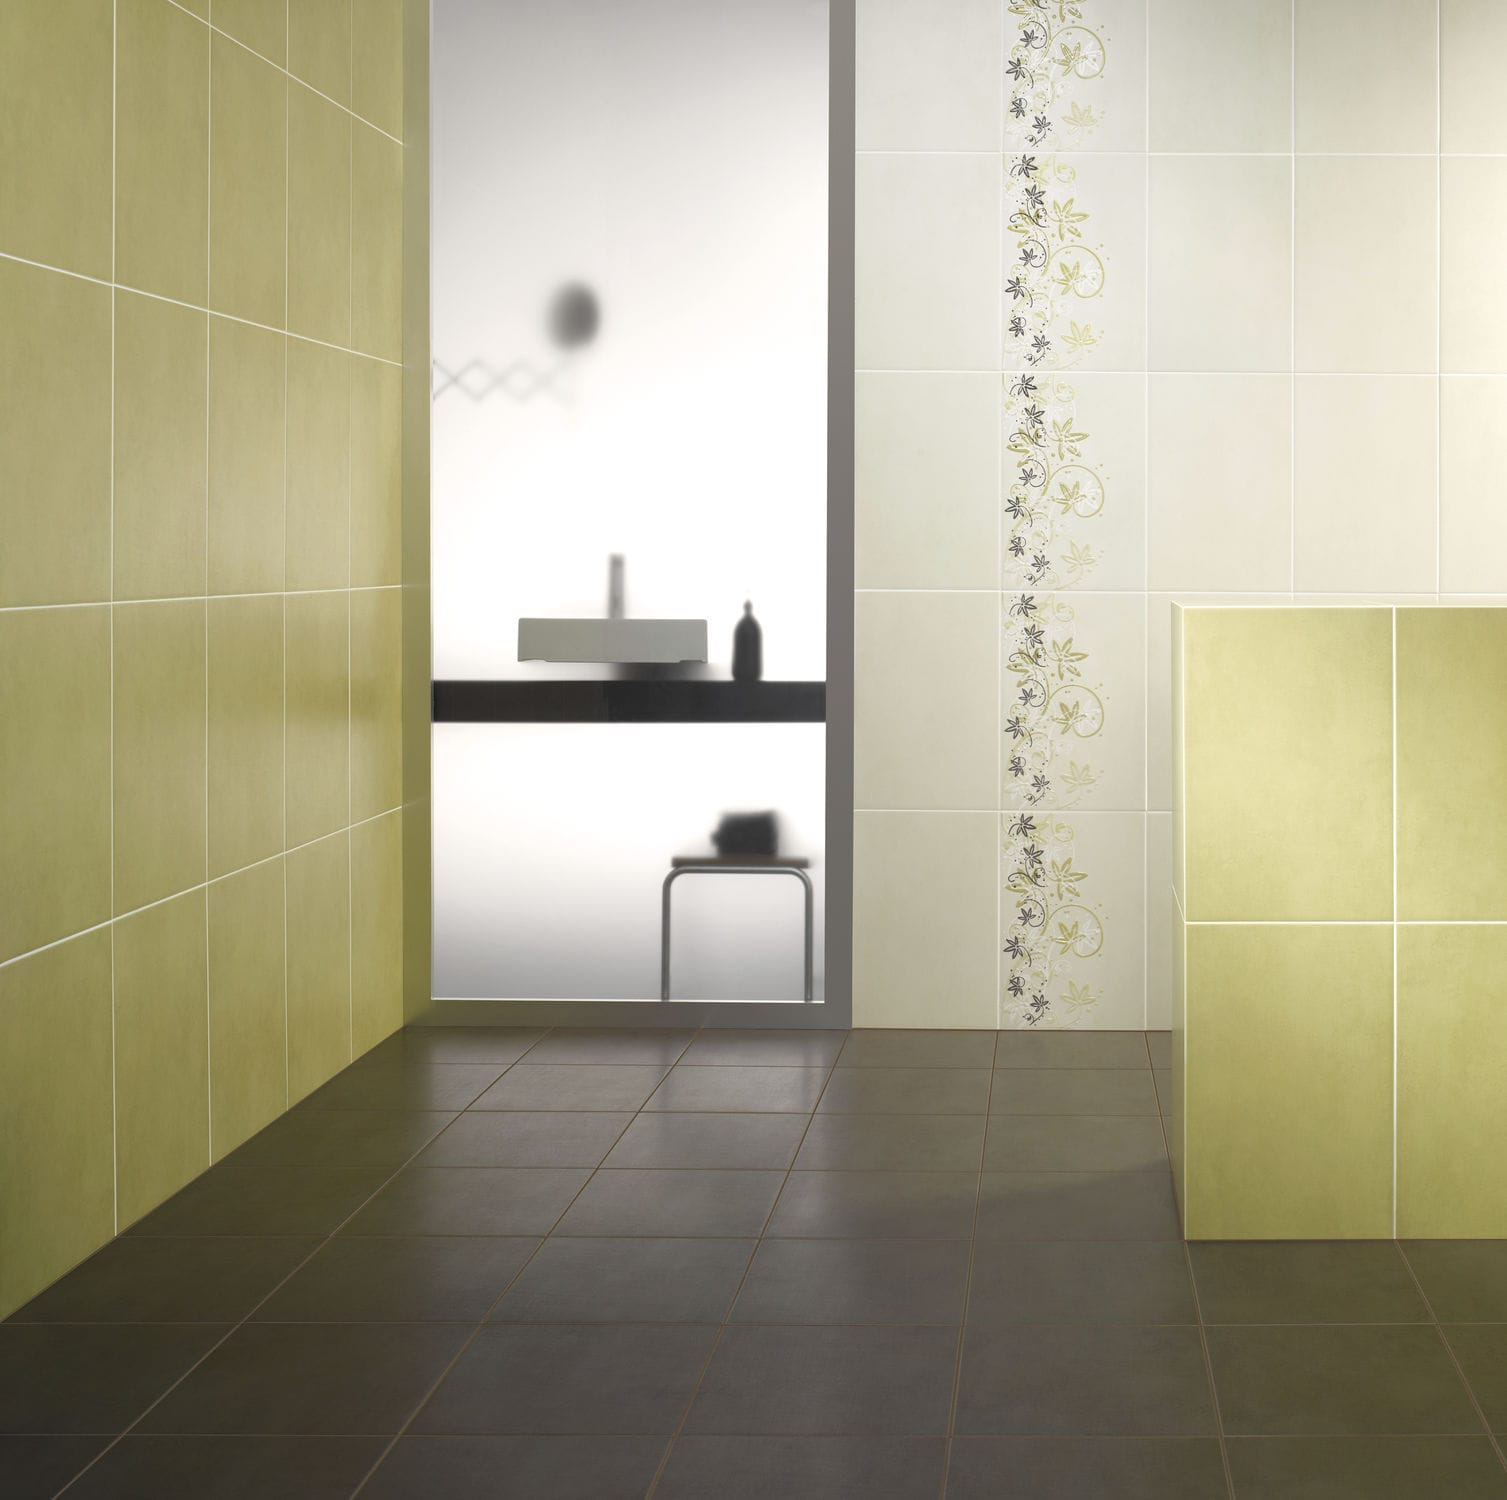 Indoor tile / bathroom / wall / ceramic - CONCRETE - DOMINO